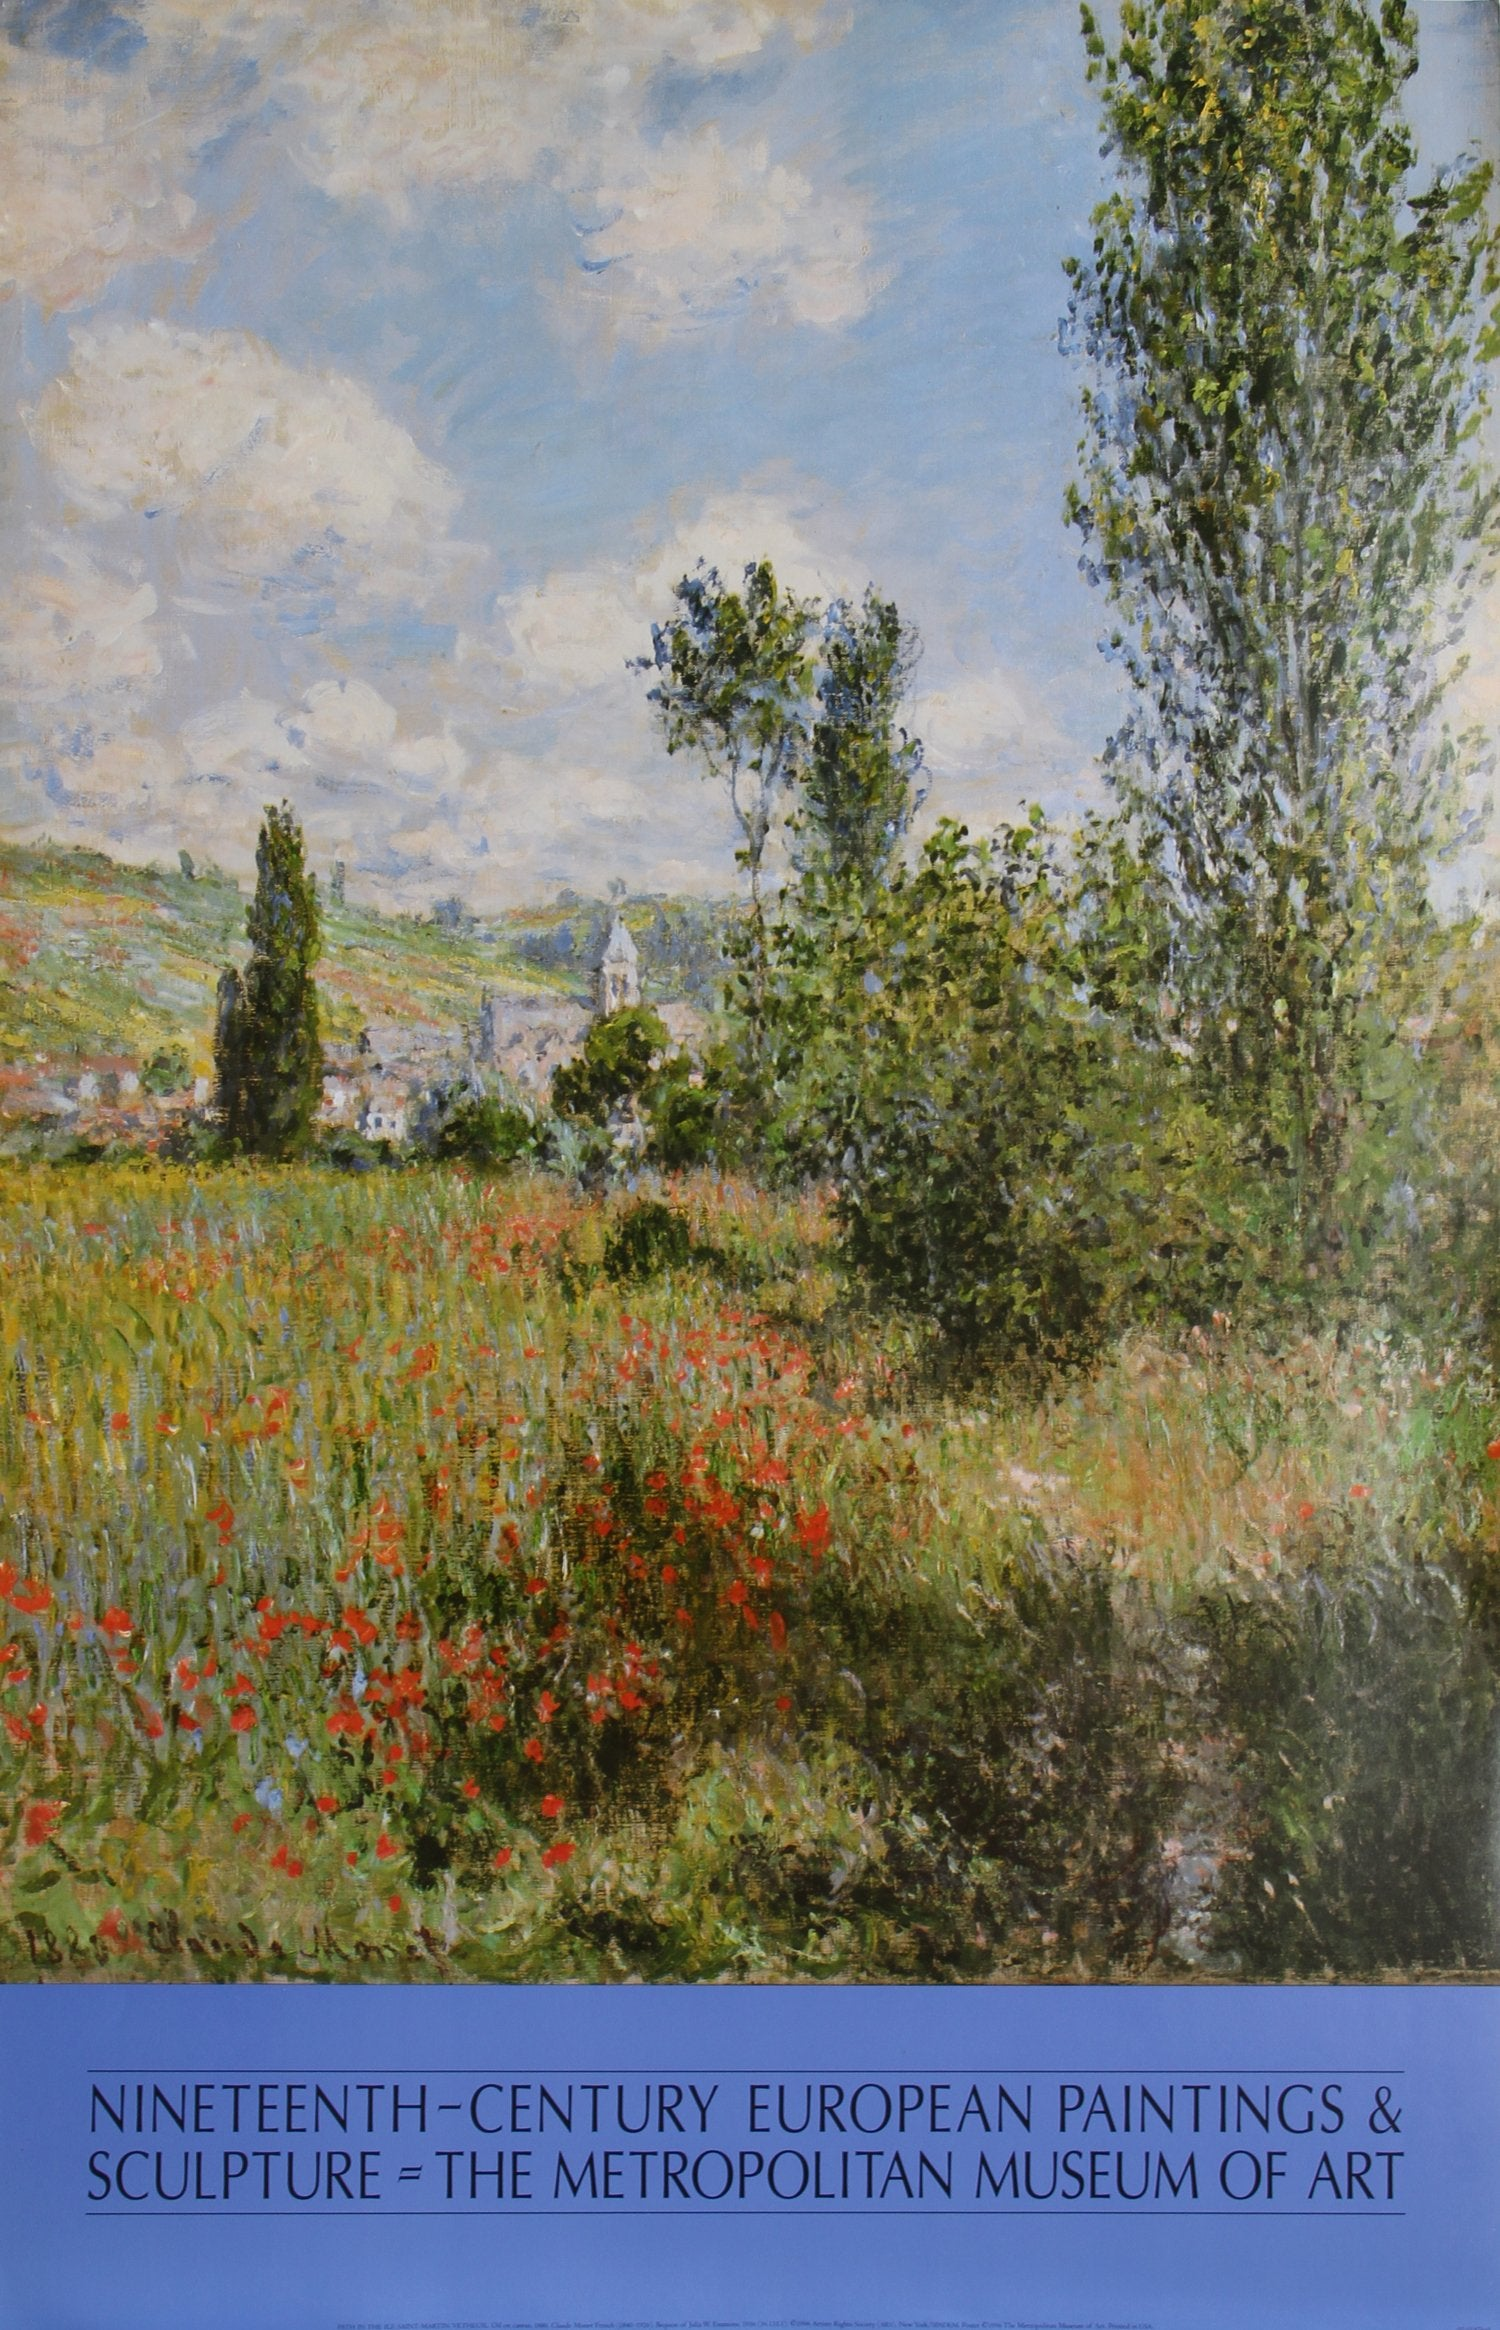 Claude Monet, Path in the Saint-Martin Vetheuil Poster - RoGallery